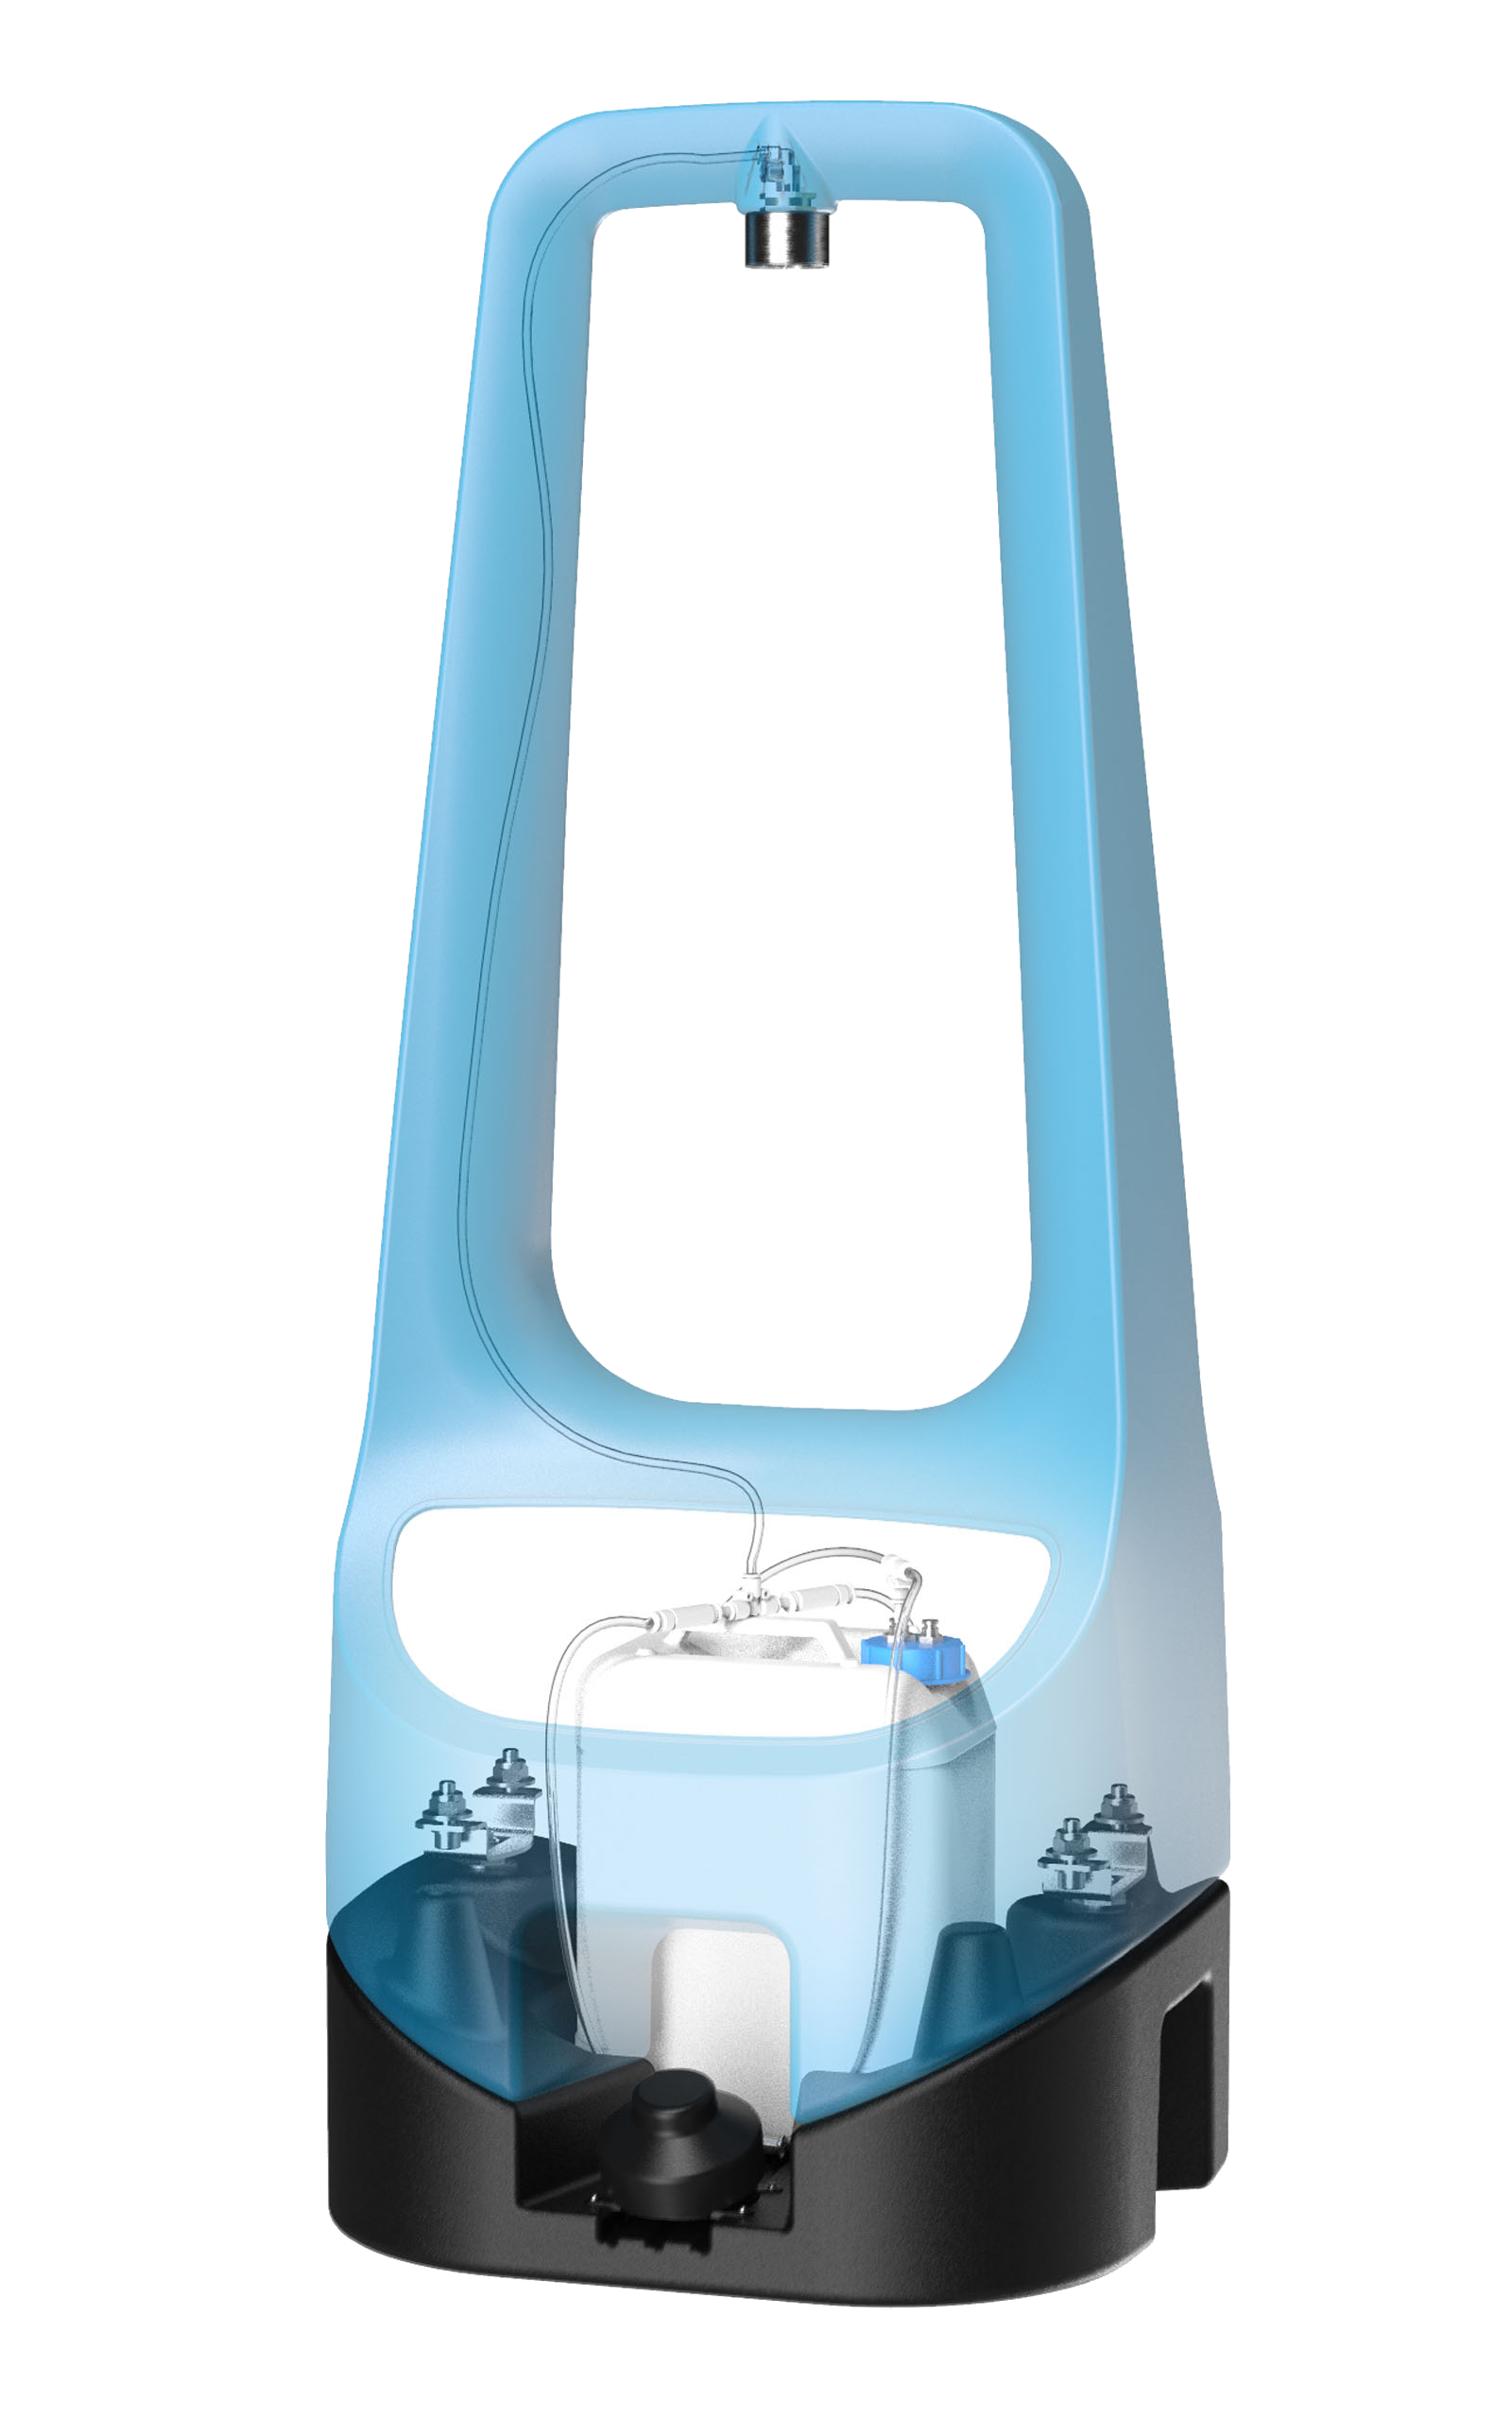 A Toi Care hand sanitizer which is slightly transparent to see the interior of it.